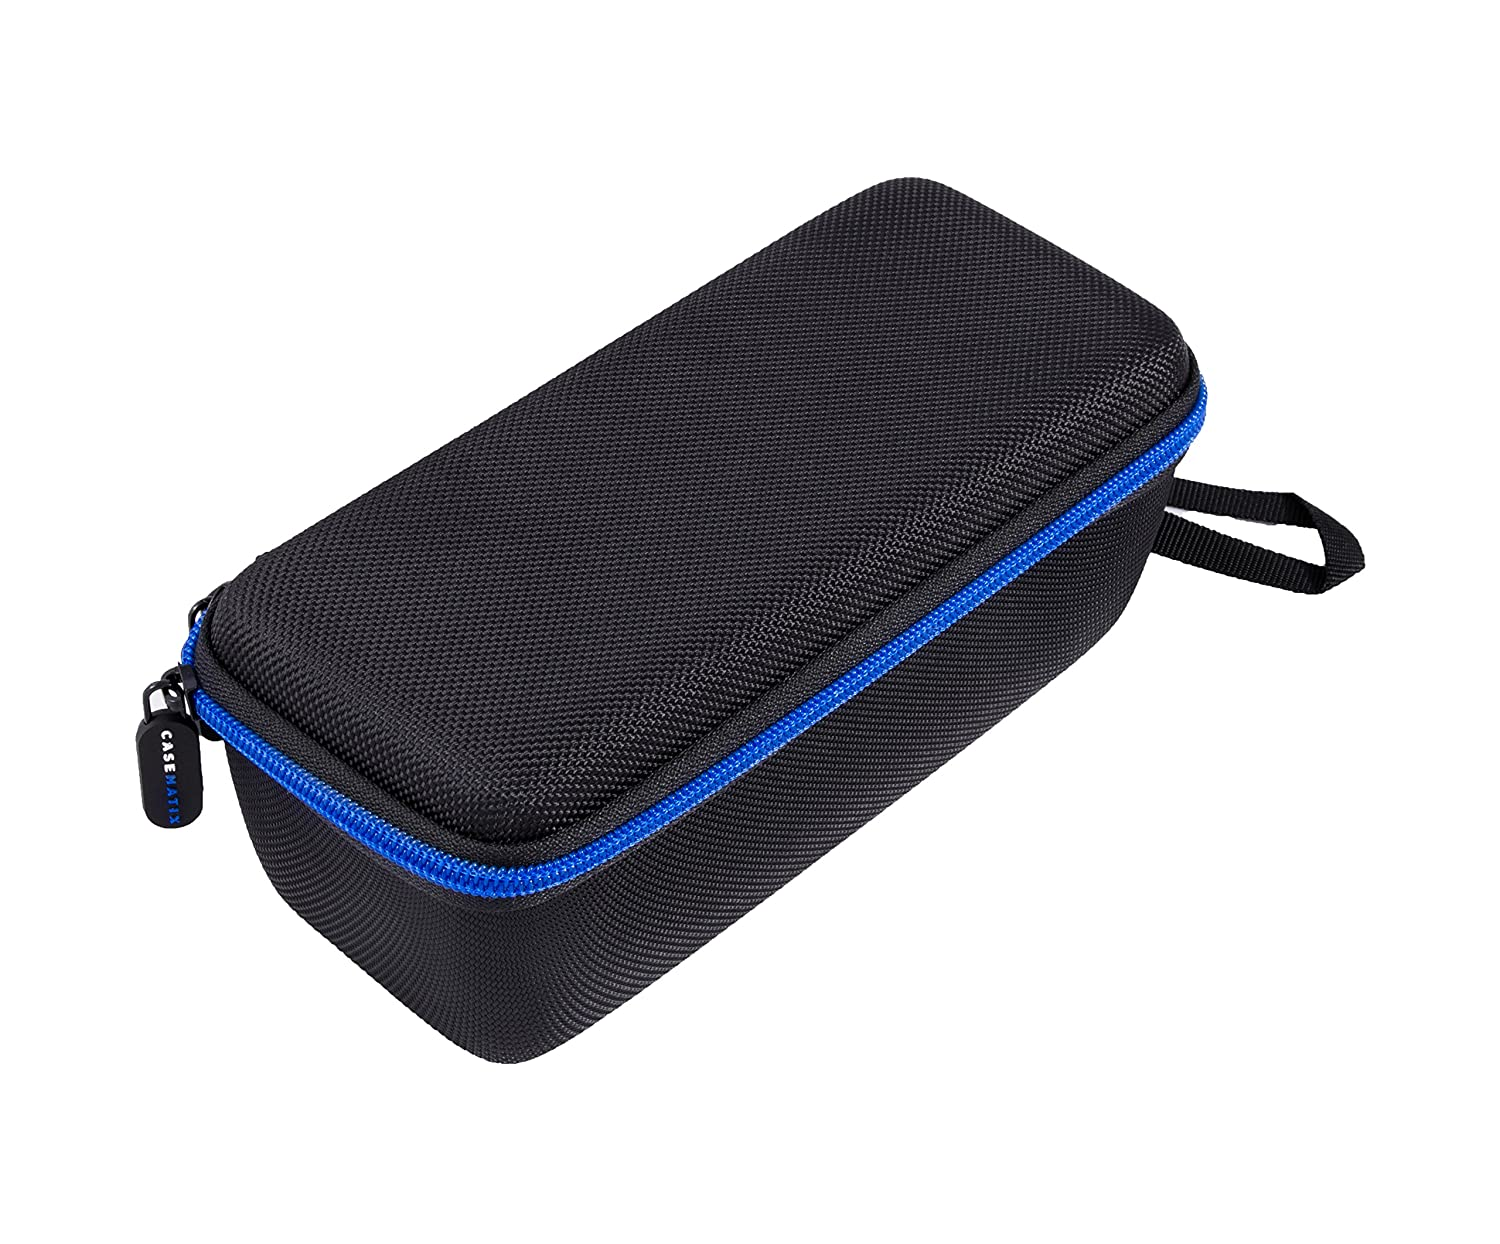 CASEMATIX Protective Travel Carry Case for Qardioarm Wireless Blood Pressure Monitor and More Medical Monitoring Accessories